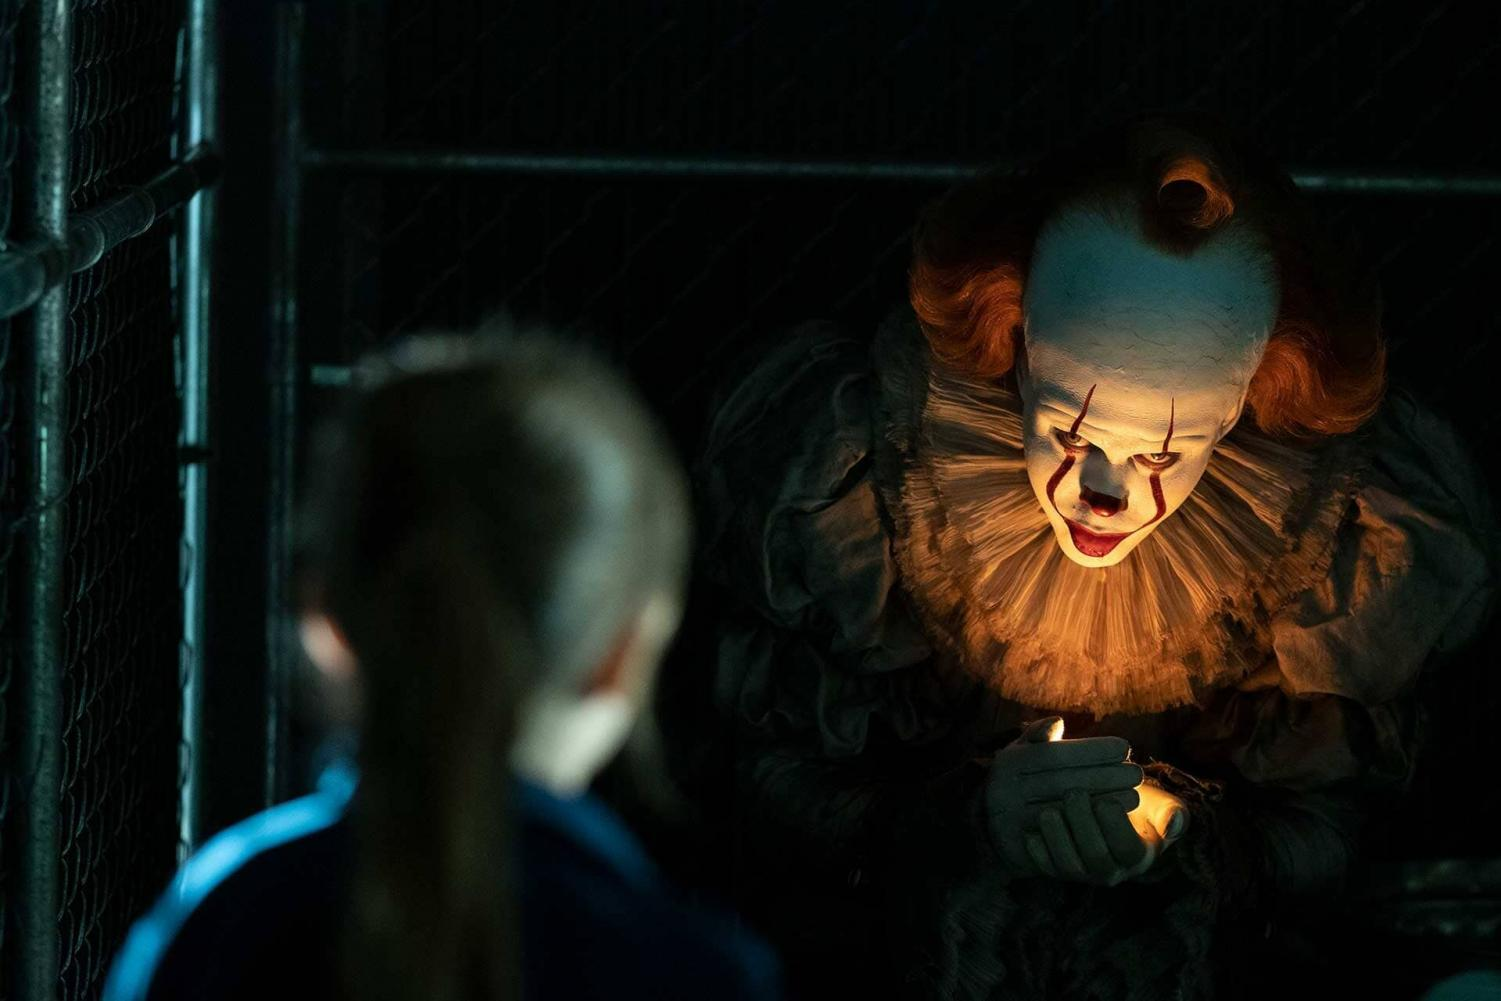 Pennywise uses a lightning bug to lure a little girl into his grasp. (Photo by Warner Brothers)